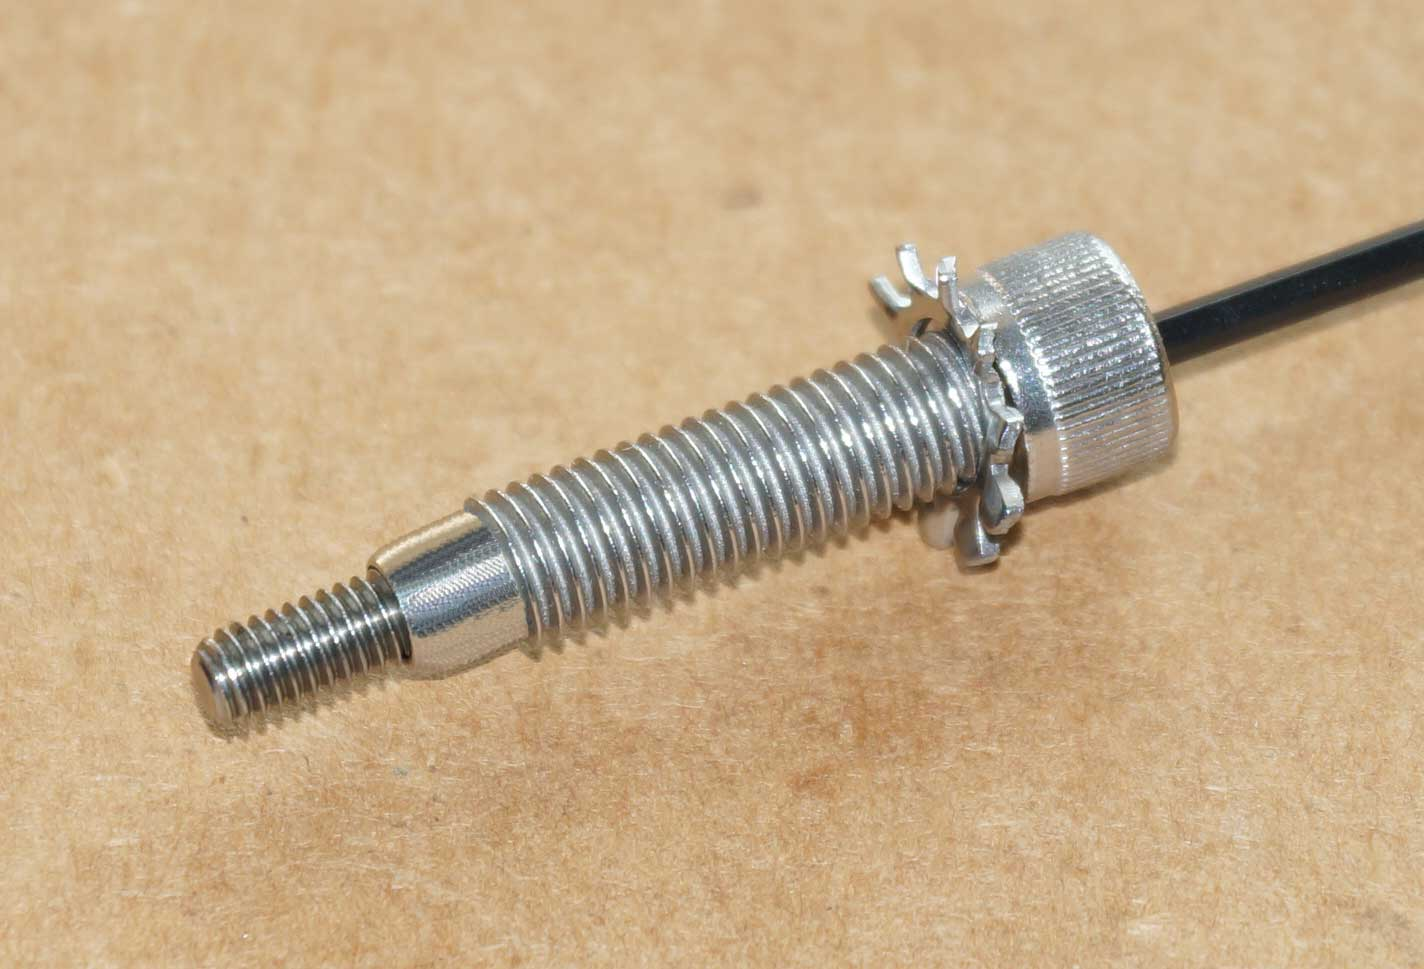 Trigger-Mate Screw altered